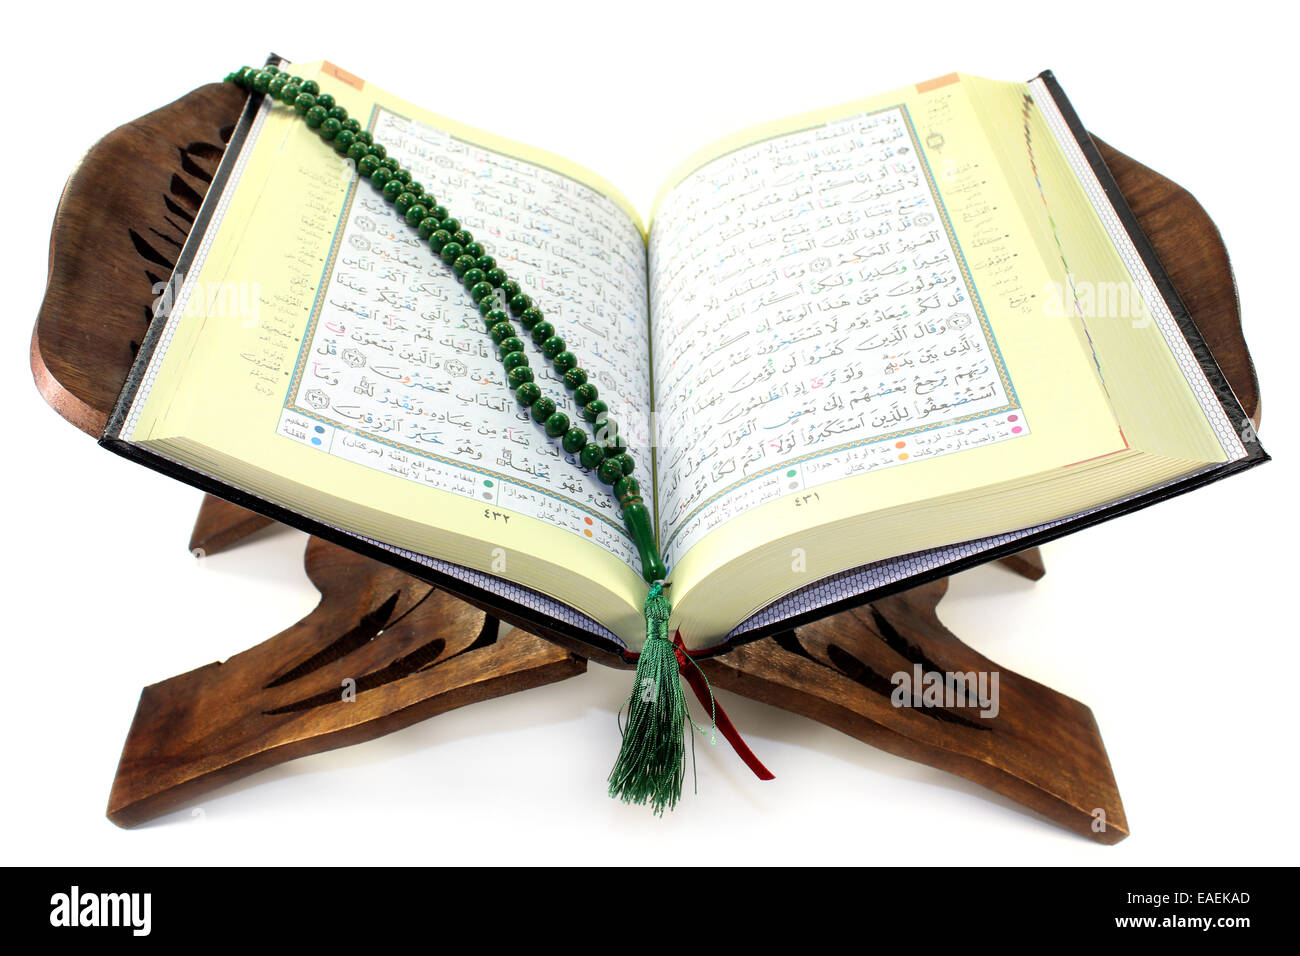 Quran with Quran wooden stand in front of white background - Stock Image